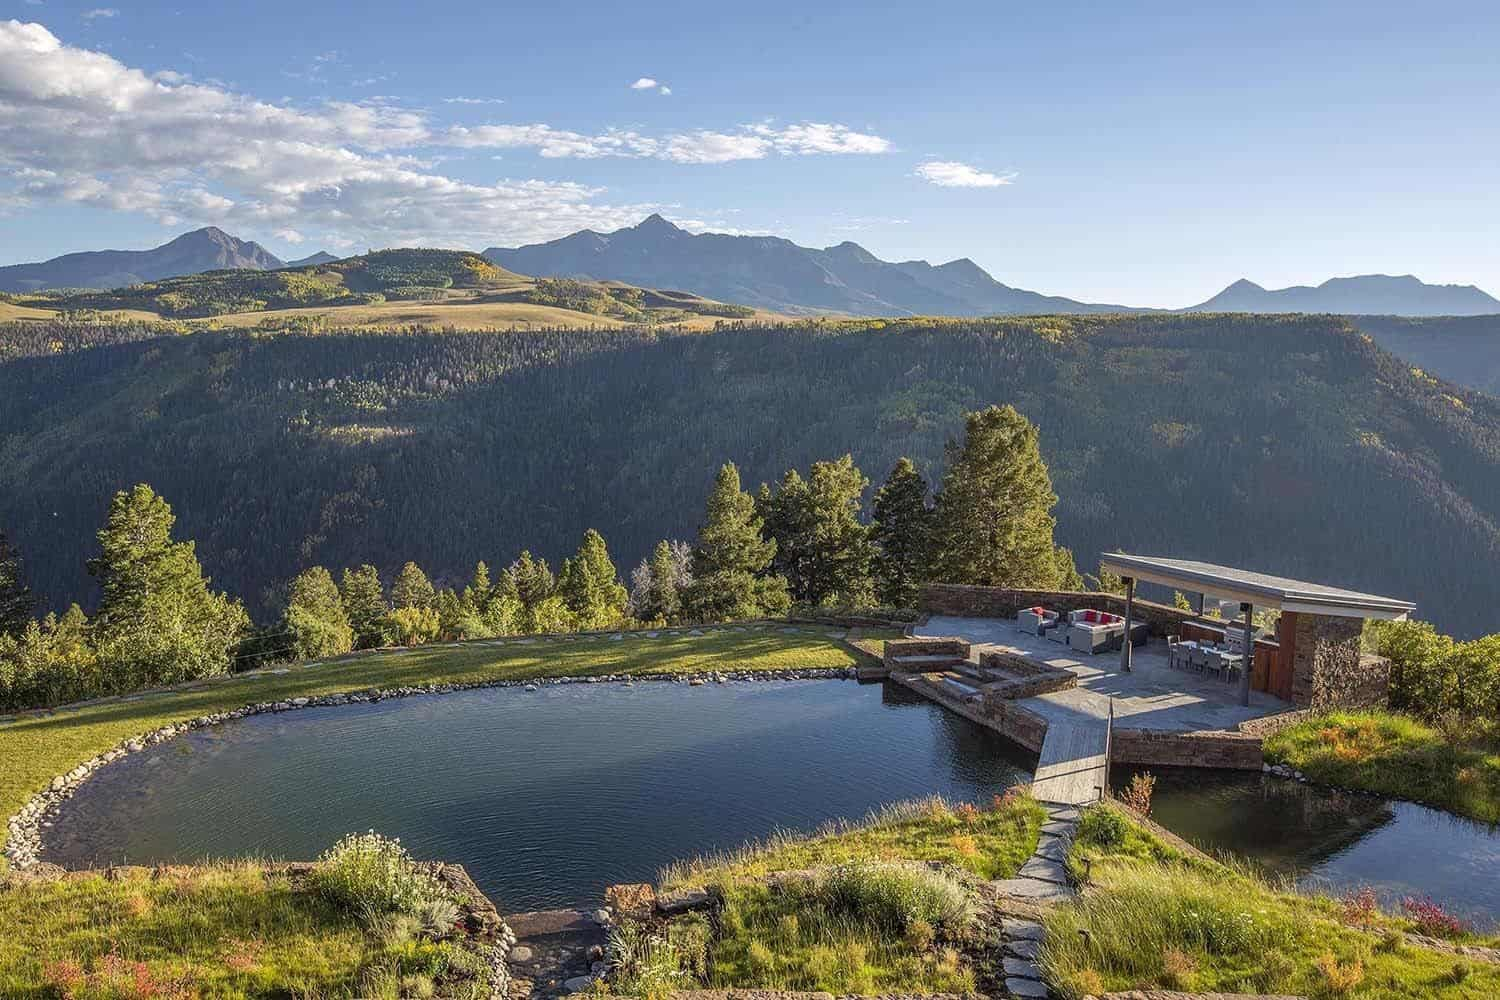 Modern-Residence-Colorado-Poss Architecture-61-1 Kindesign